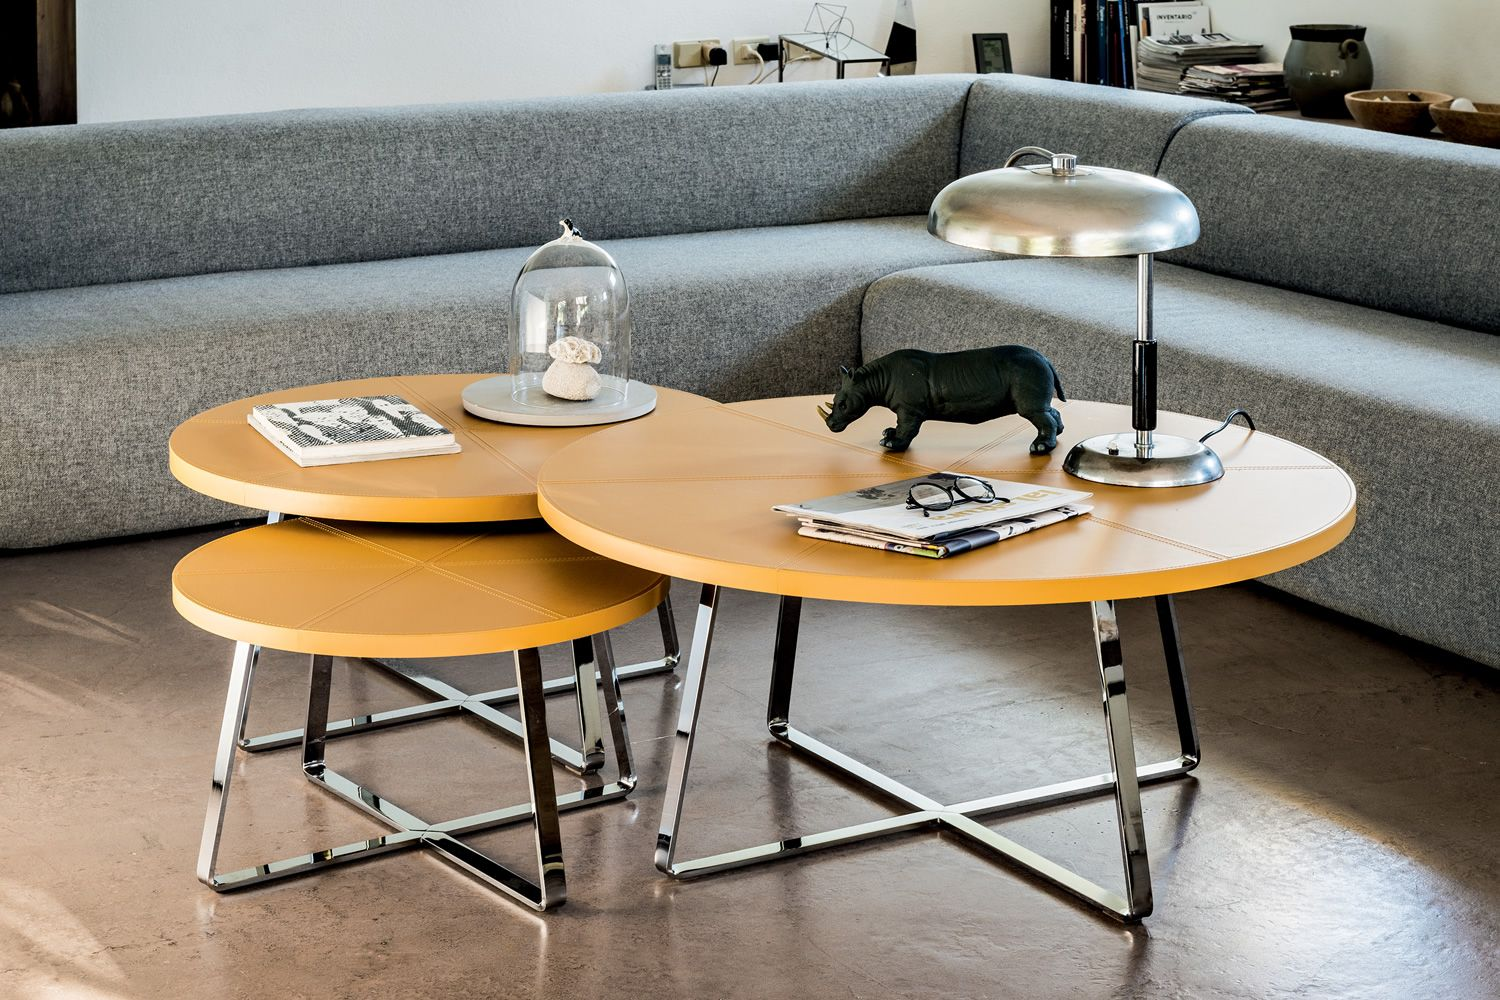 Dj Midj Coffee Table With Round Hide Top Different Colours And Sizes Sediarreda Online Sale